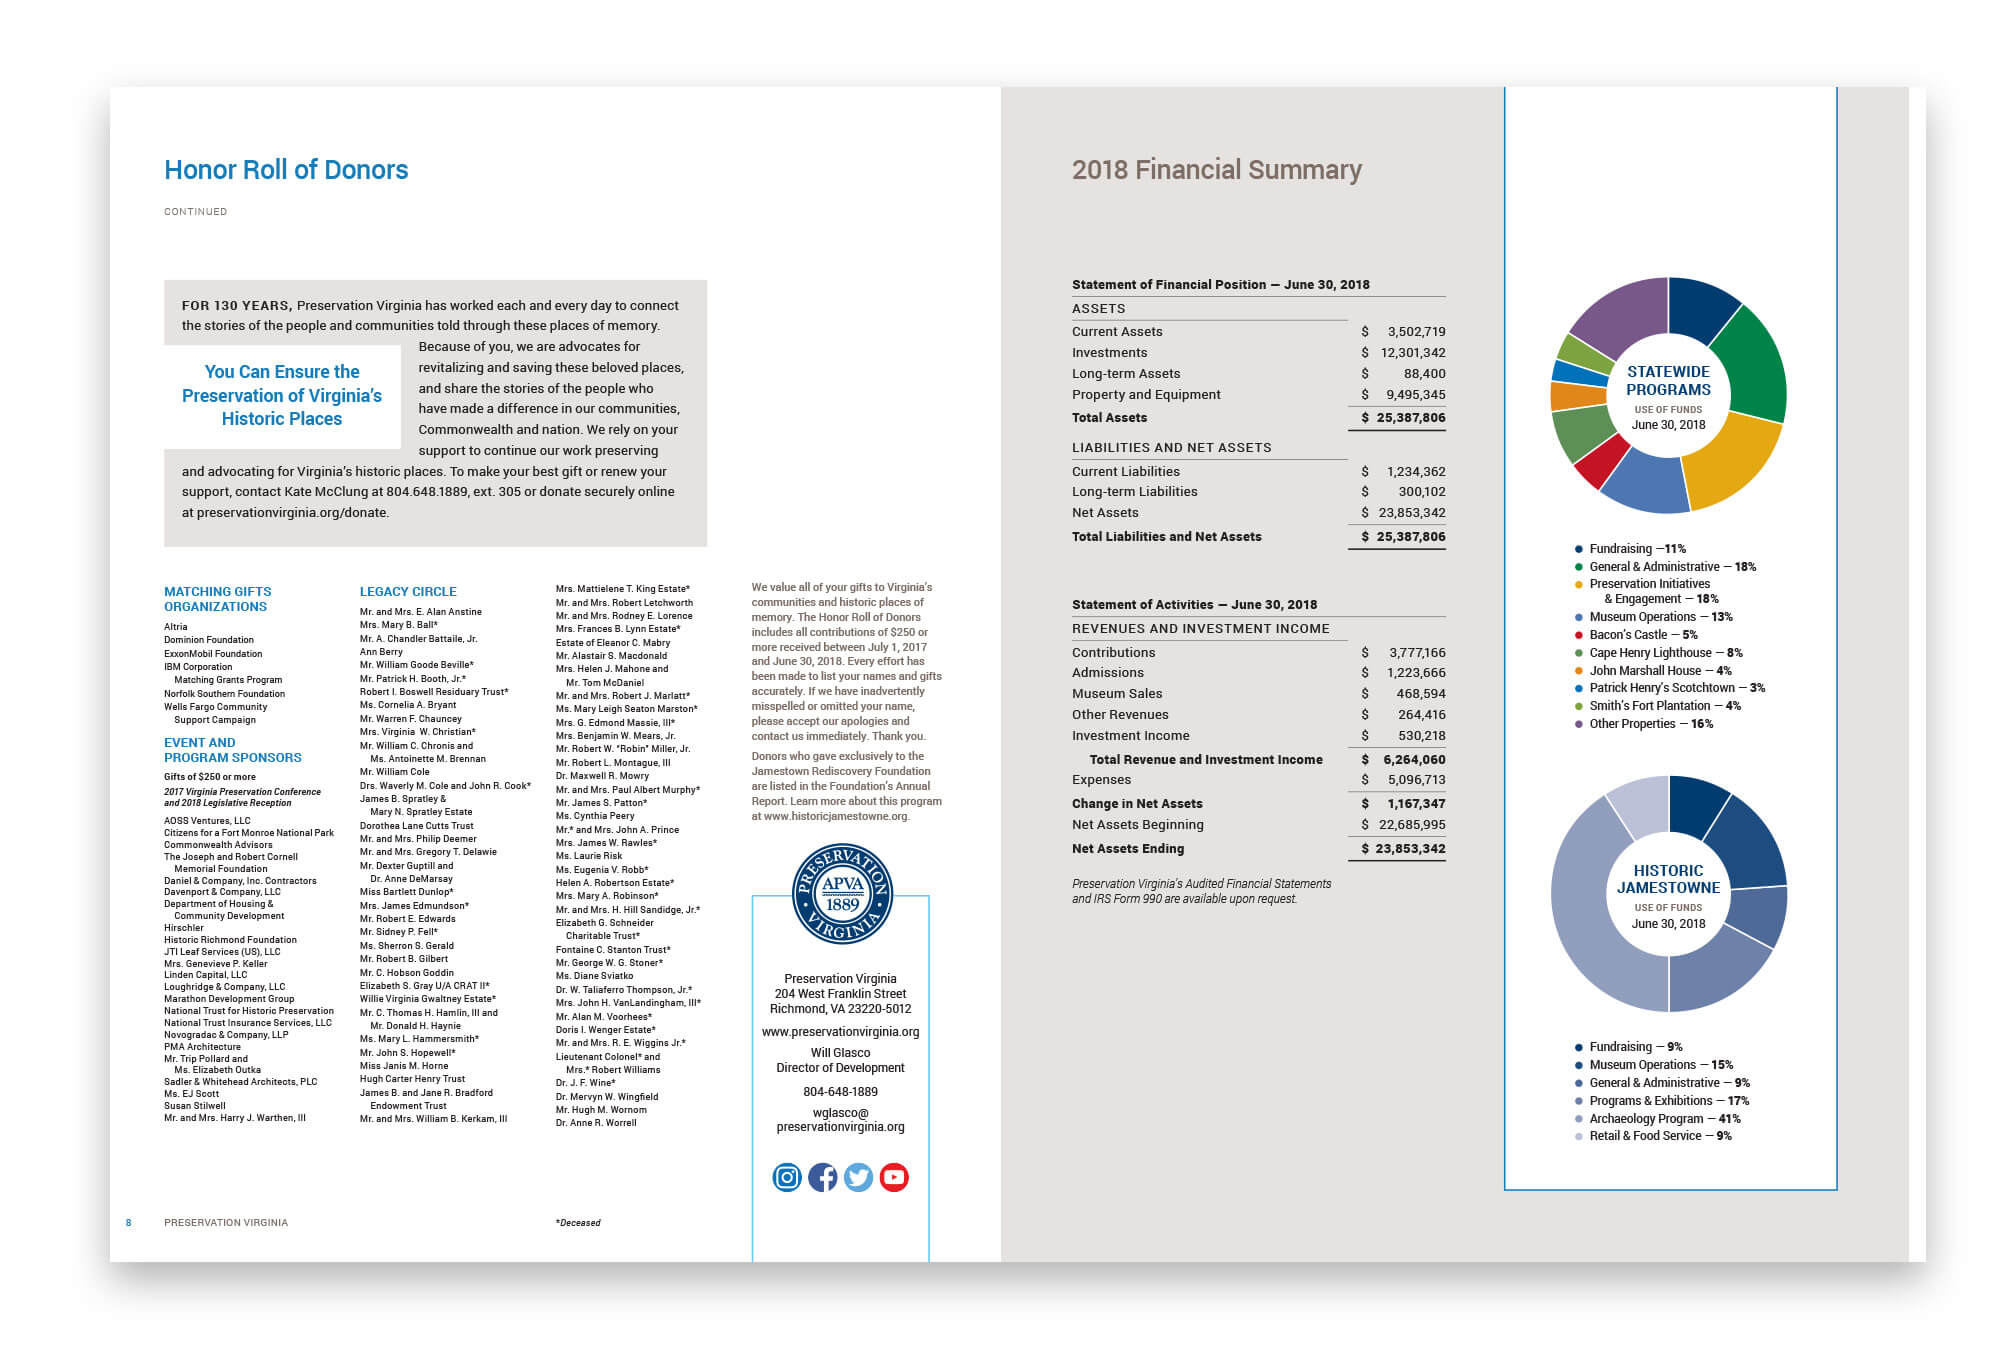 PVA Annual Report Financial Summary